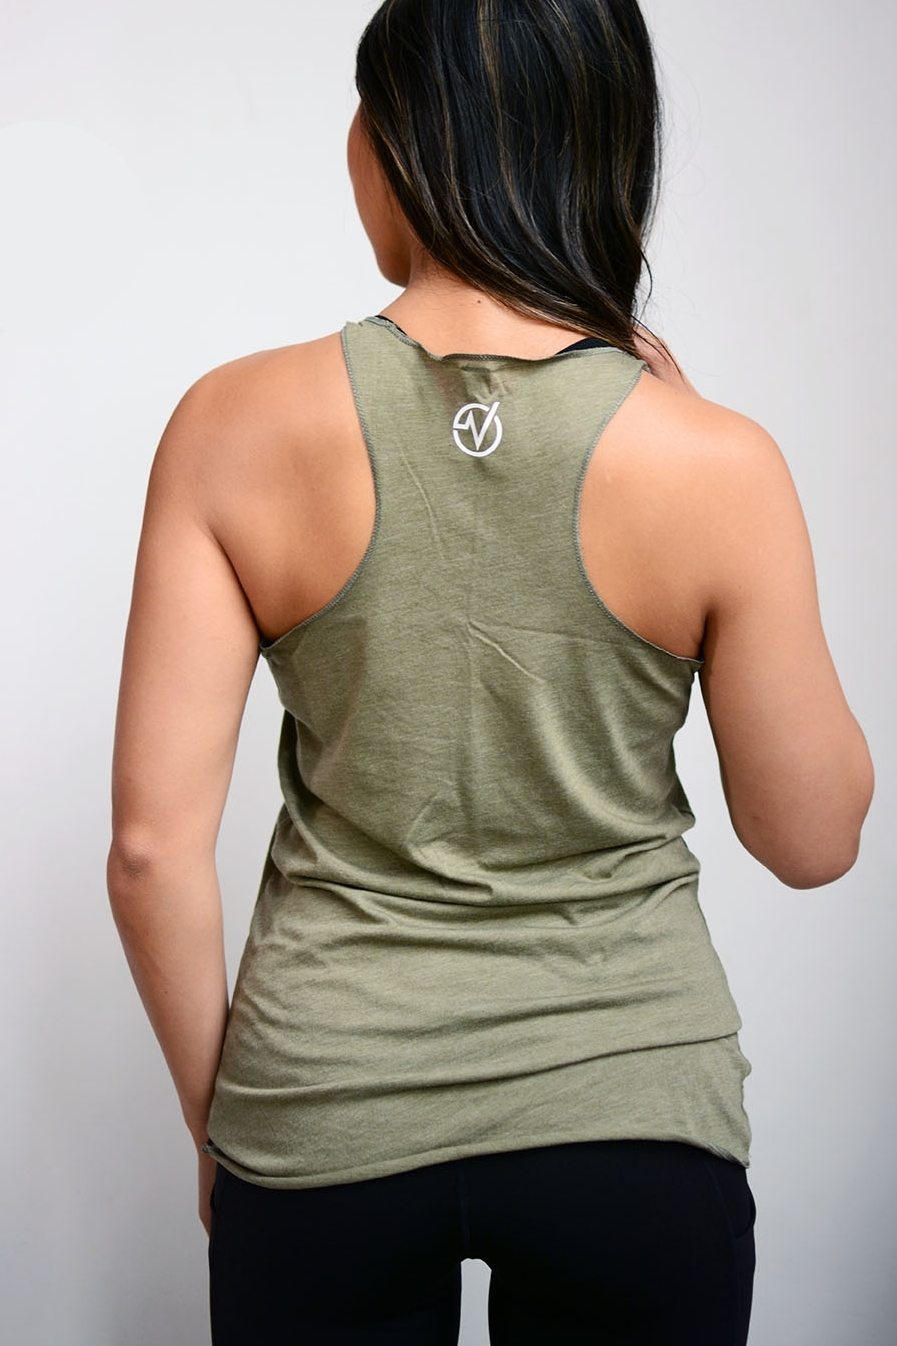 Women's Basic Racerback Tank - SKU: W8430BMIN QTY 15 / Any Color - Any Size$13.20-$15.40COLORS: Charcoal, Grey, OliveSizes: XS, S, M, L, XL, 2XL